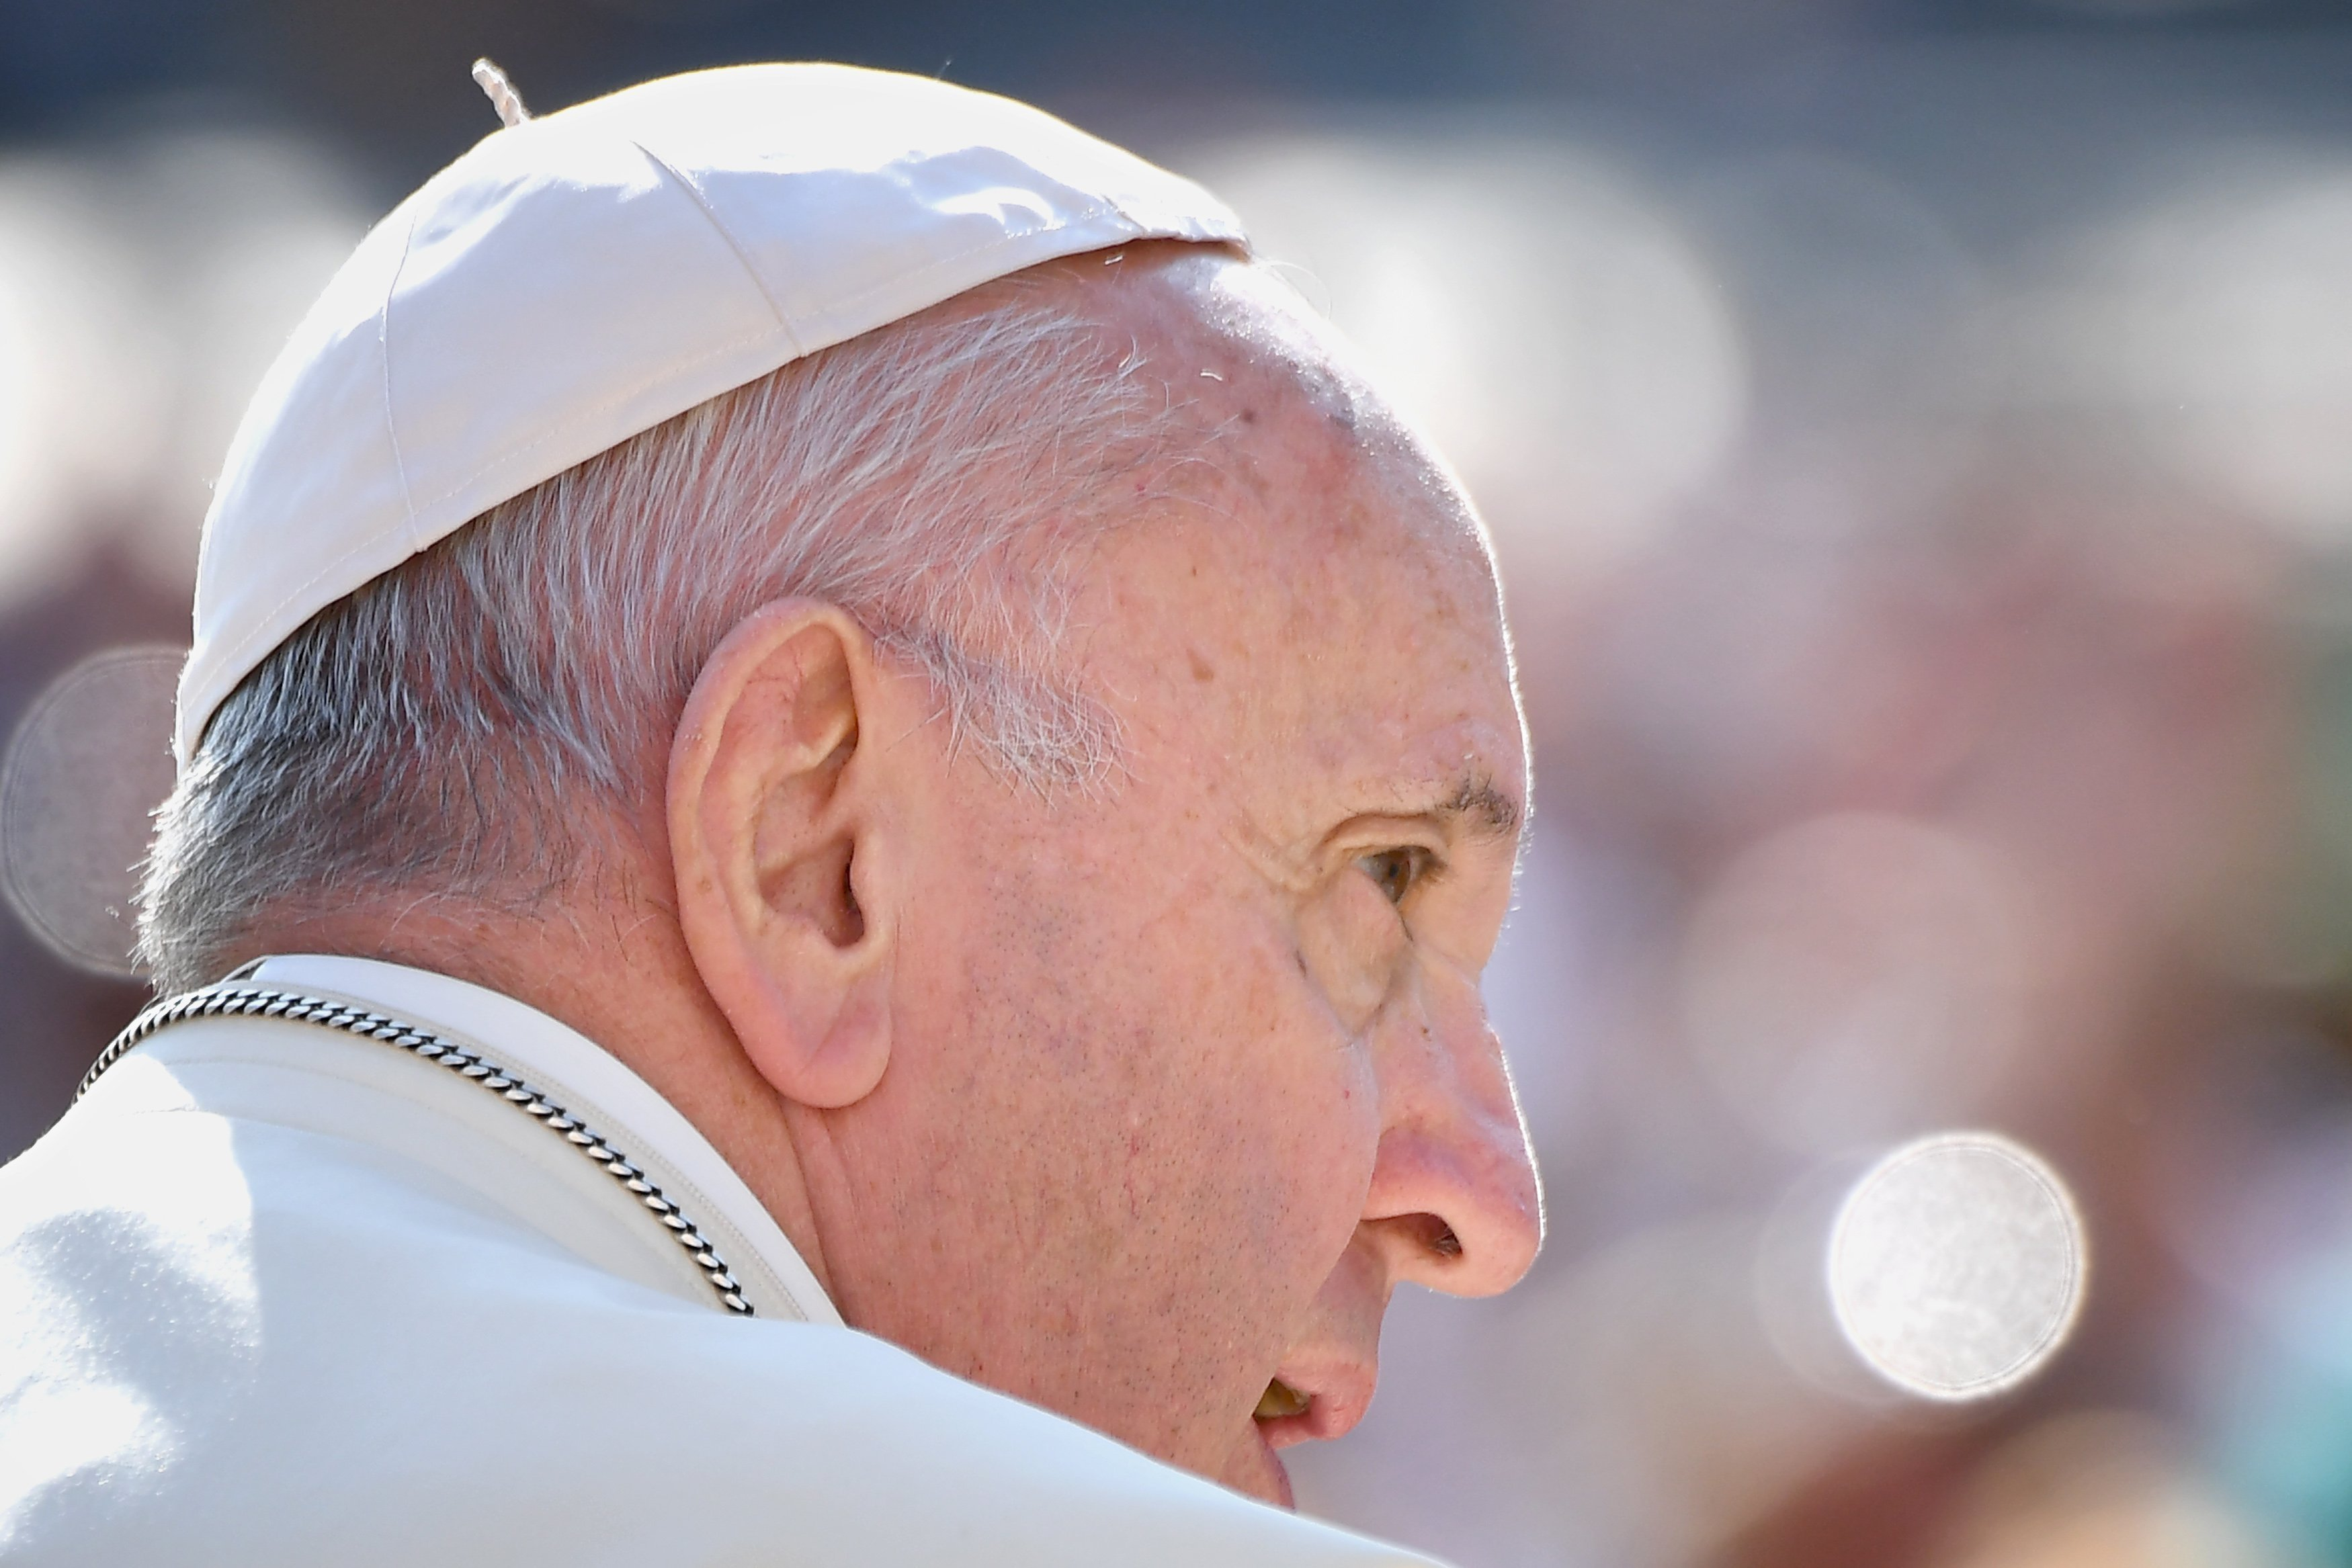 """Pope Francis is facing yet more criticism over the """"glacial"""" speed in his handling of the sexual abuse crisis that has plagued the Catholic Church."""